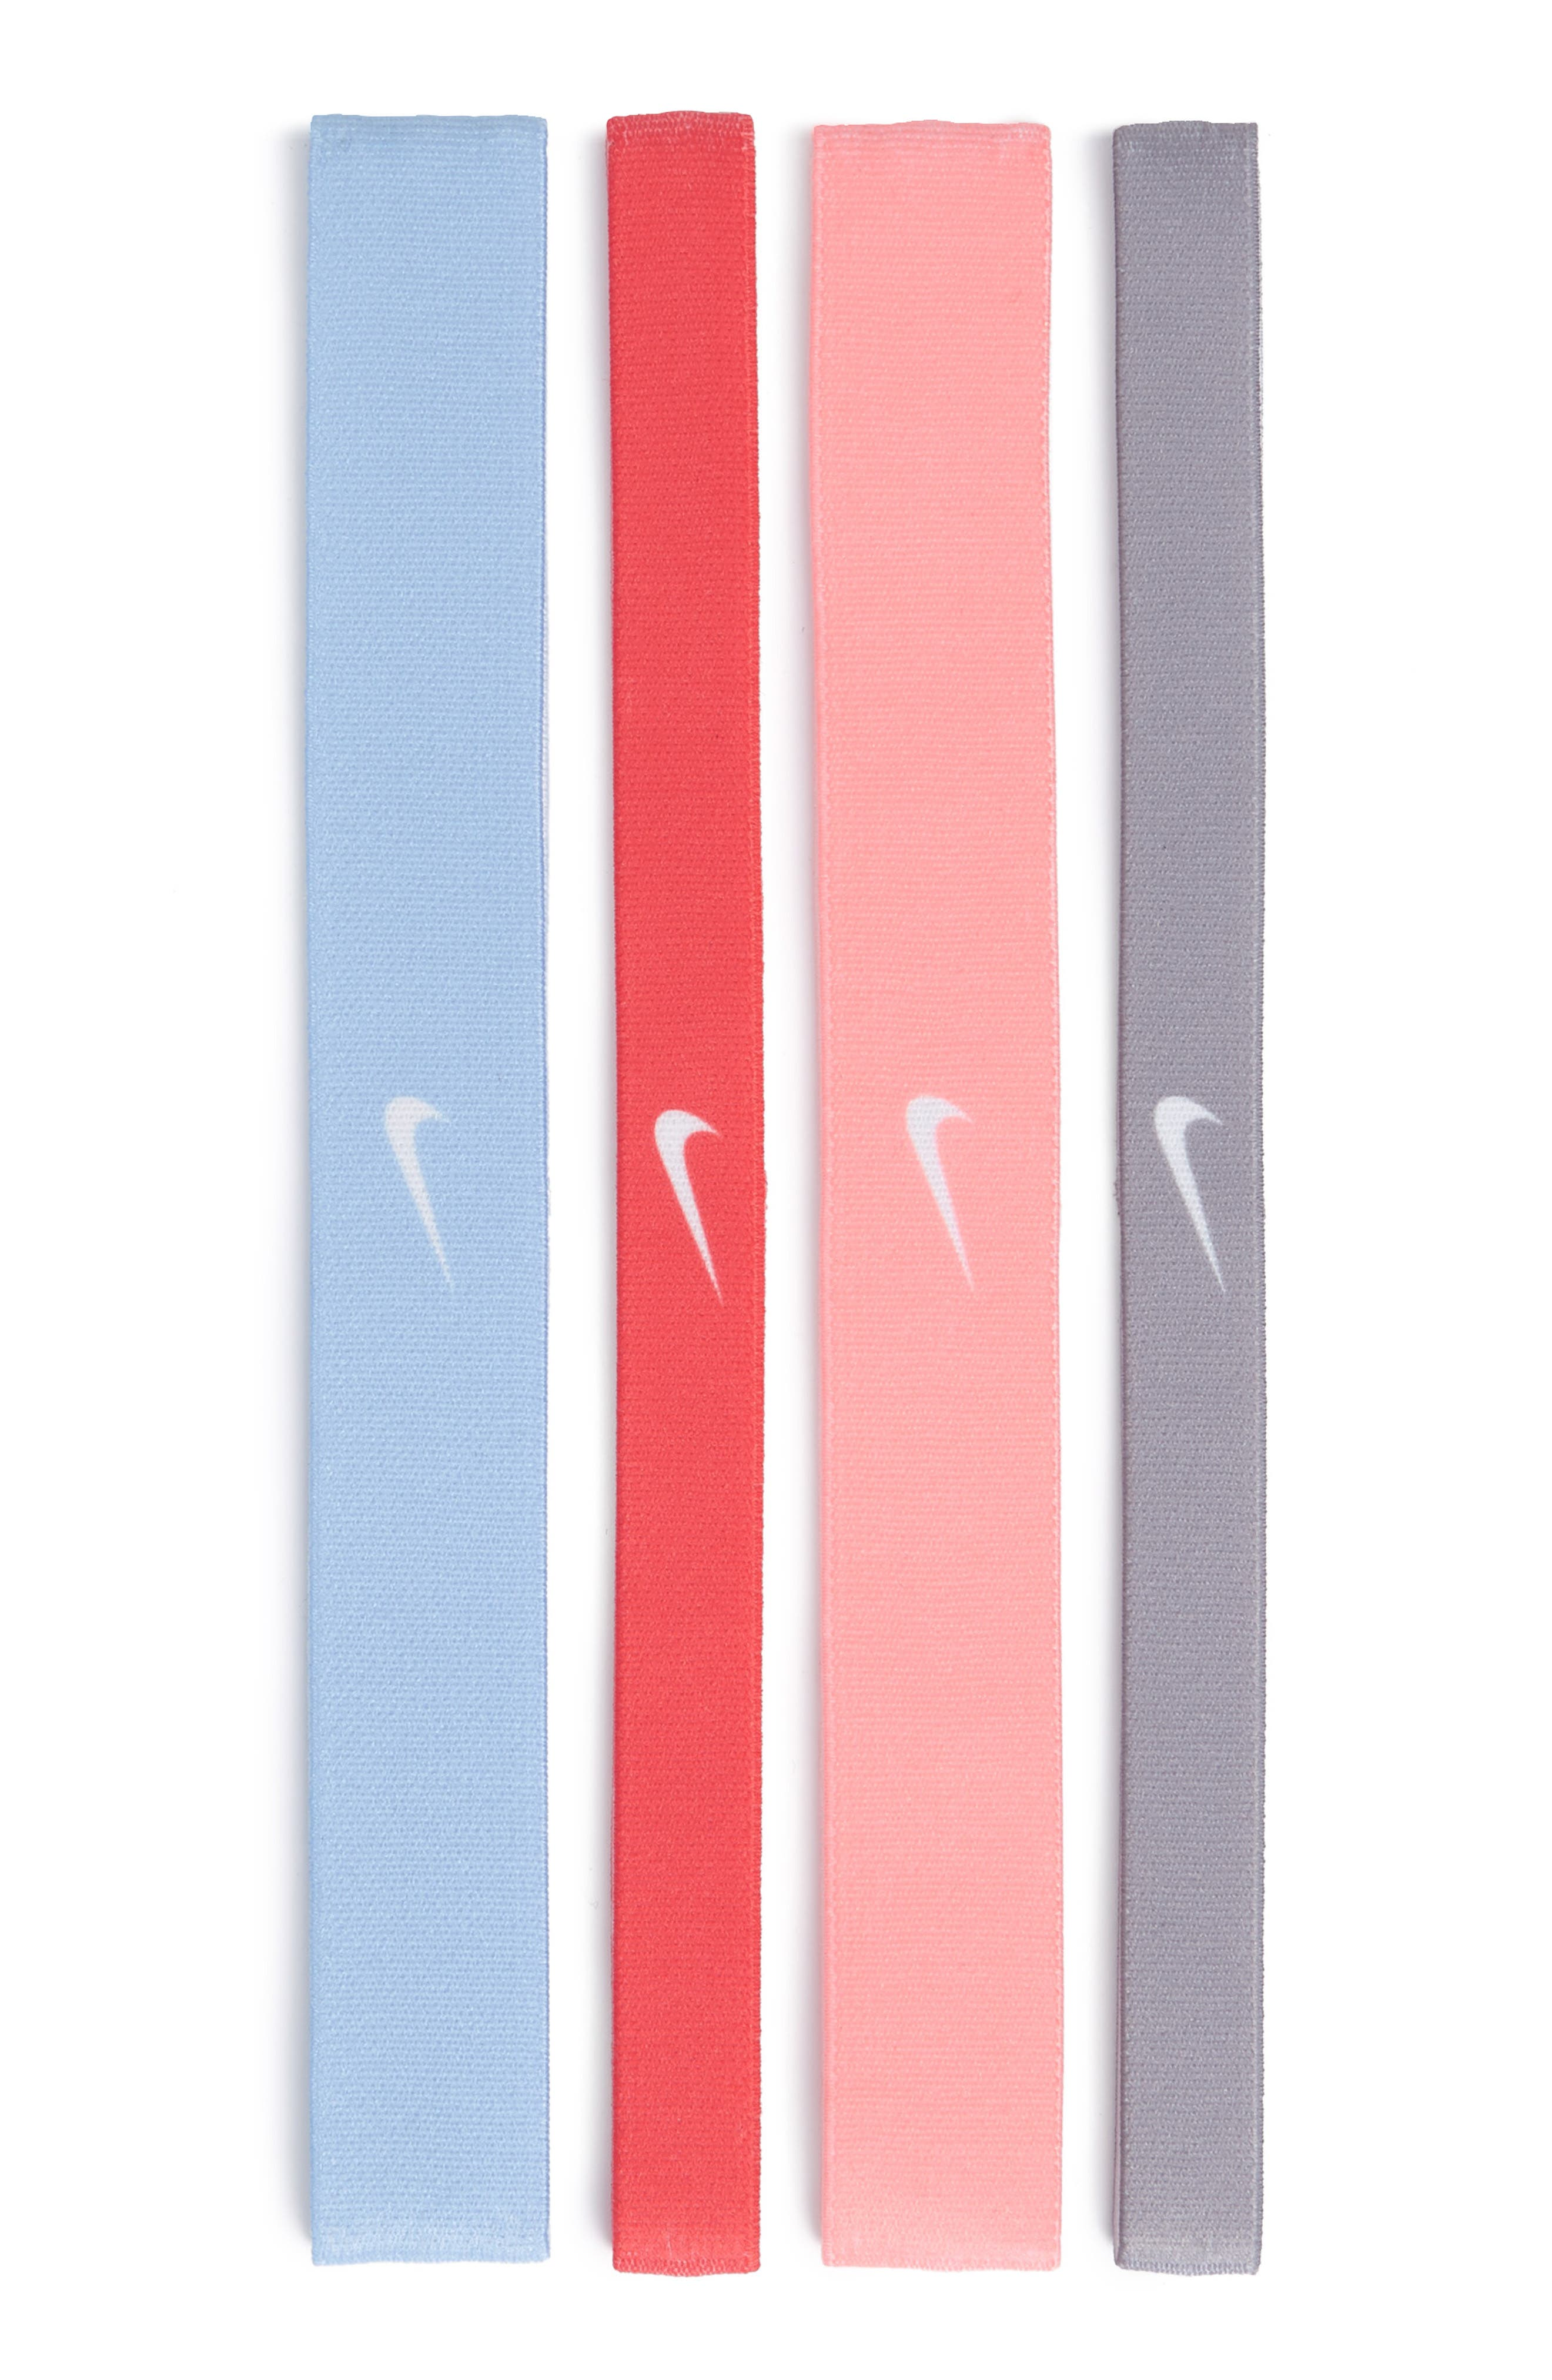 4-Pack Headbands,                         Main,                         color, Grey/ Pink/ Coral